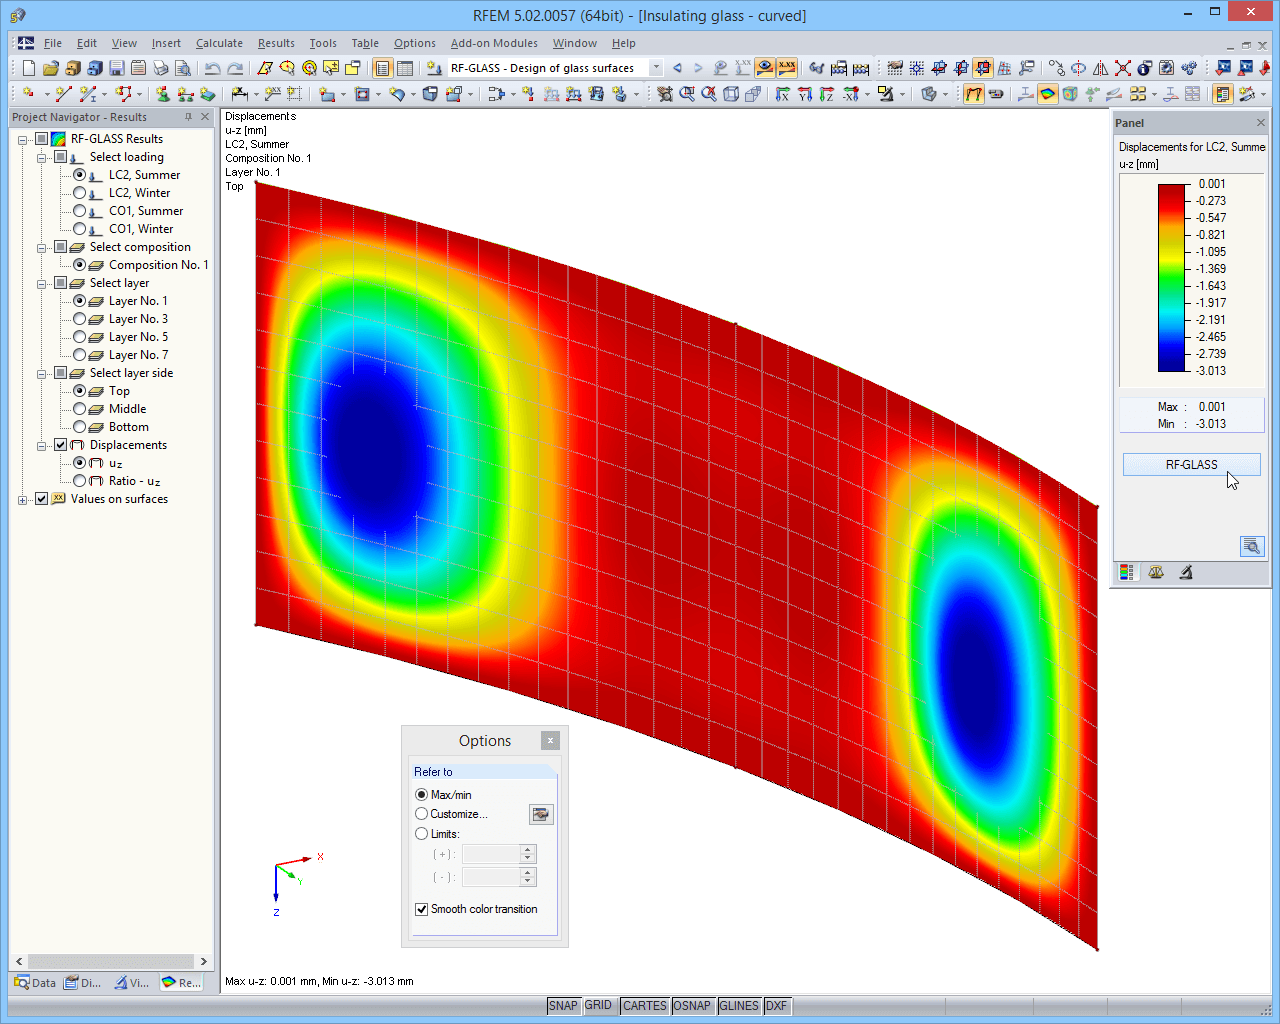 Results in RFEM graphic - displacements